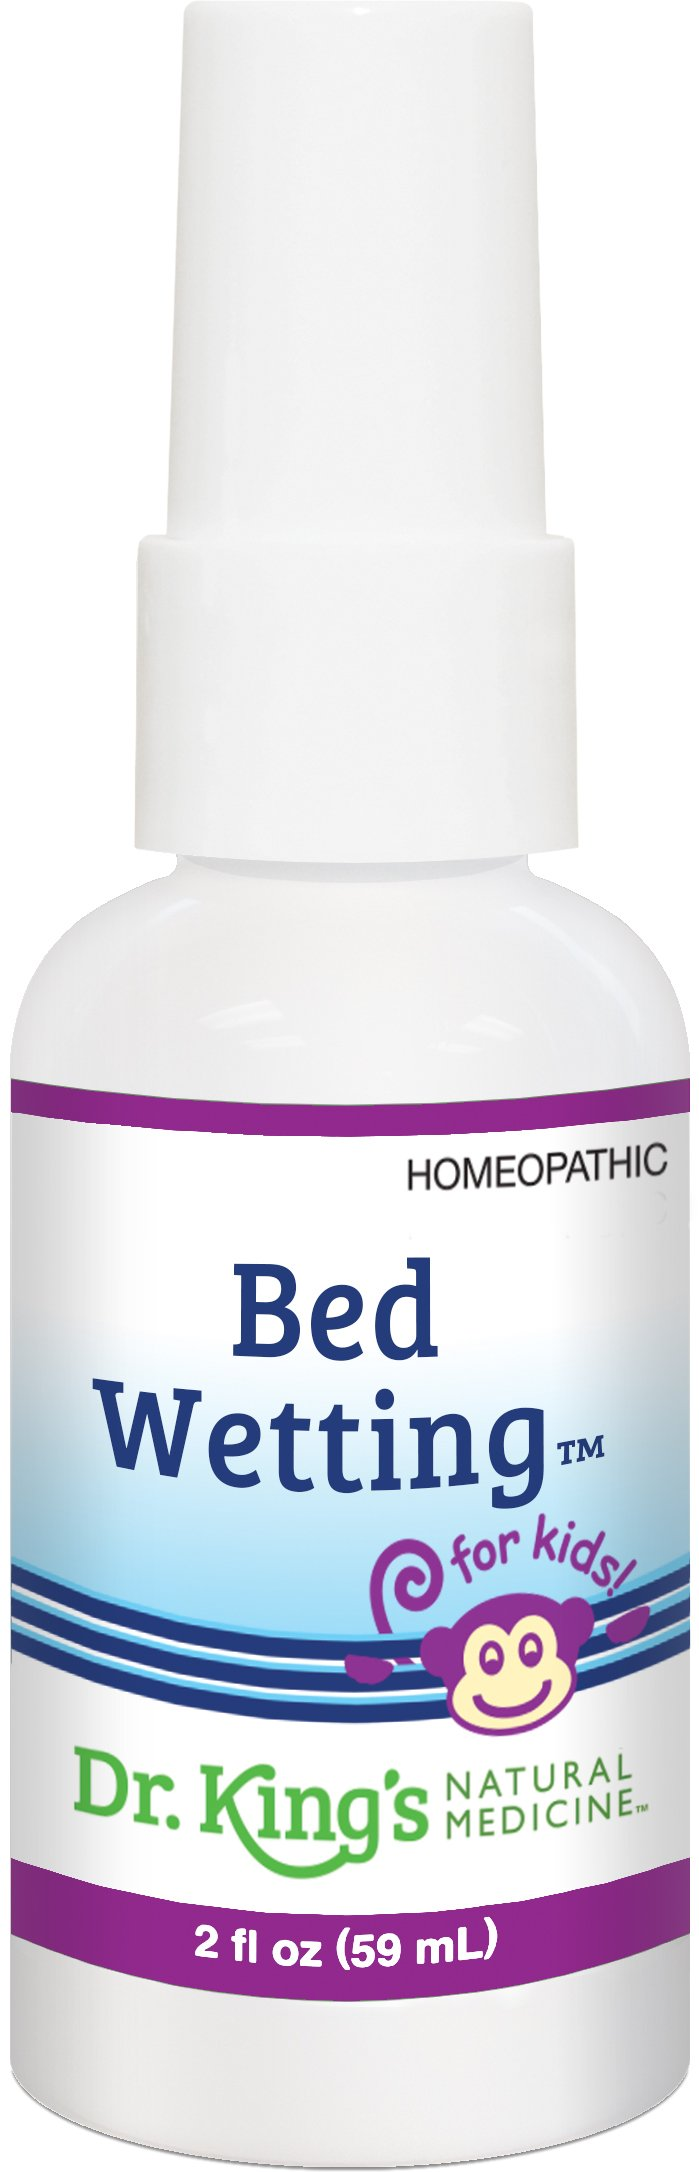 Dr. King's Natural Medicine Bed Wetting, 2 Fluid Ounce